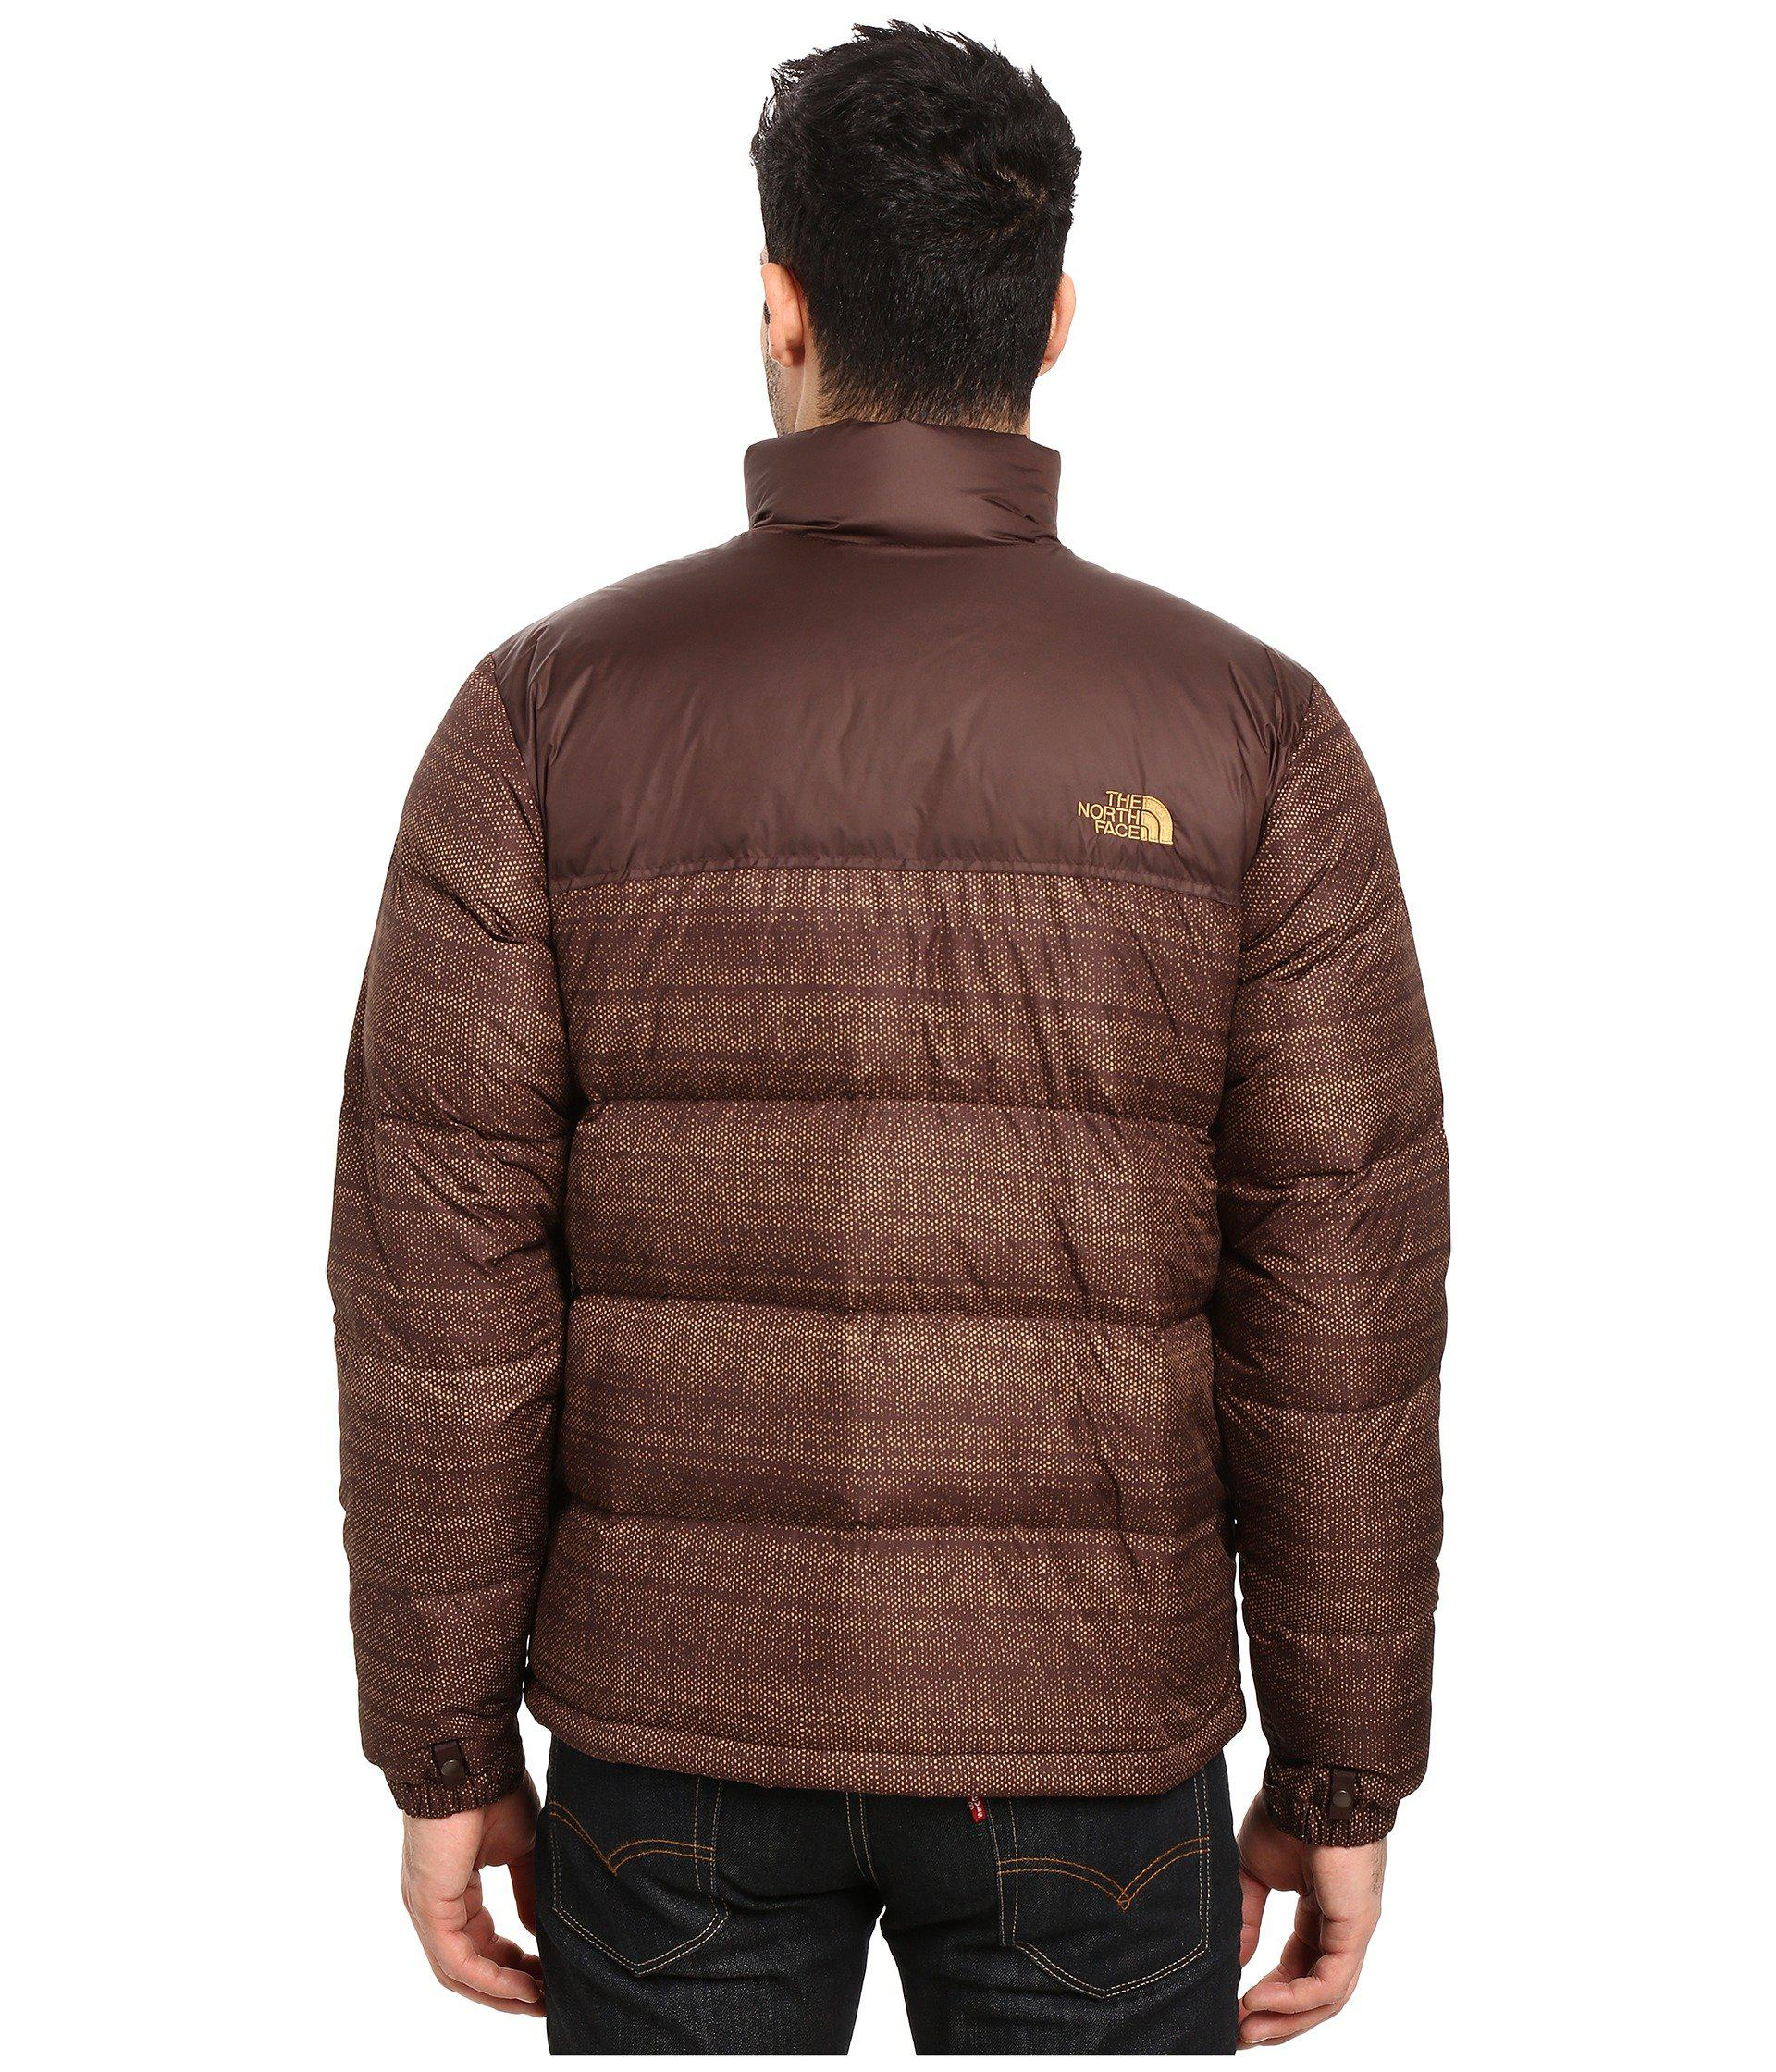 d861bb8ace7e Lyst - The North Face Nuptse Jacket in Brown for Men